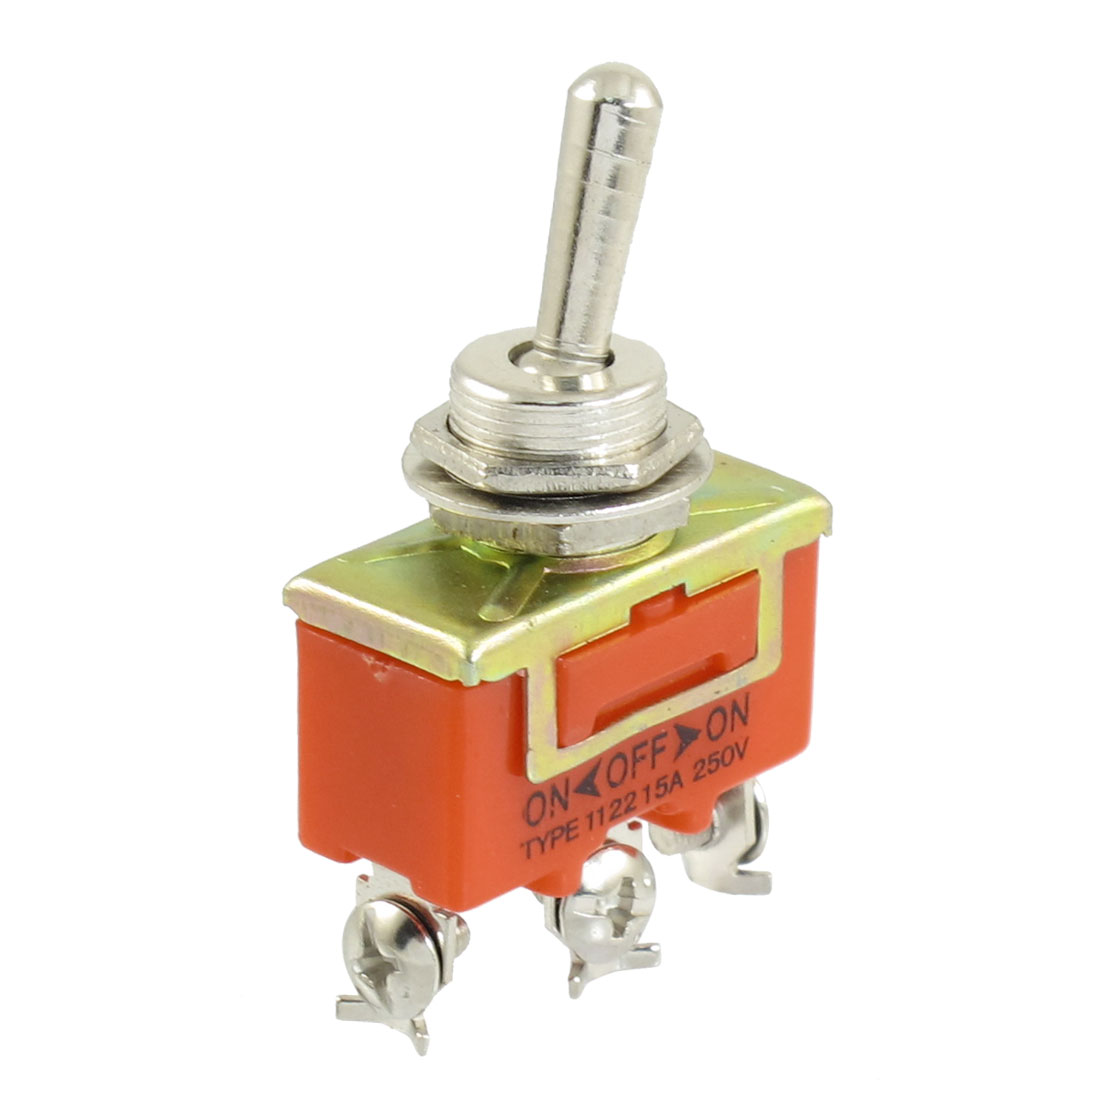 SPST ON/OFF/ON 3 Position 3 Screw Terminals Toggle Switch AC 250V 15A